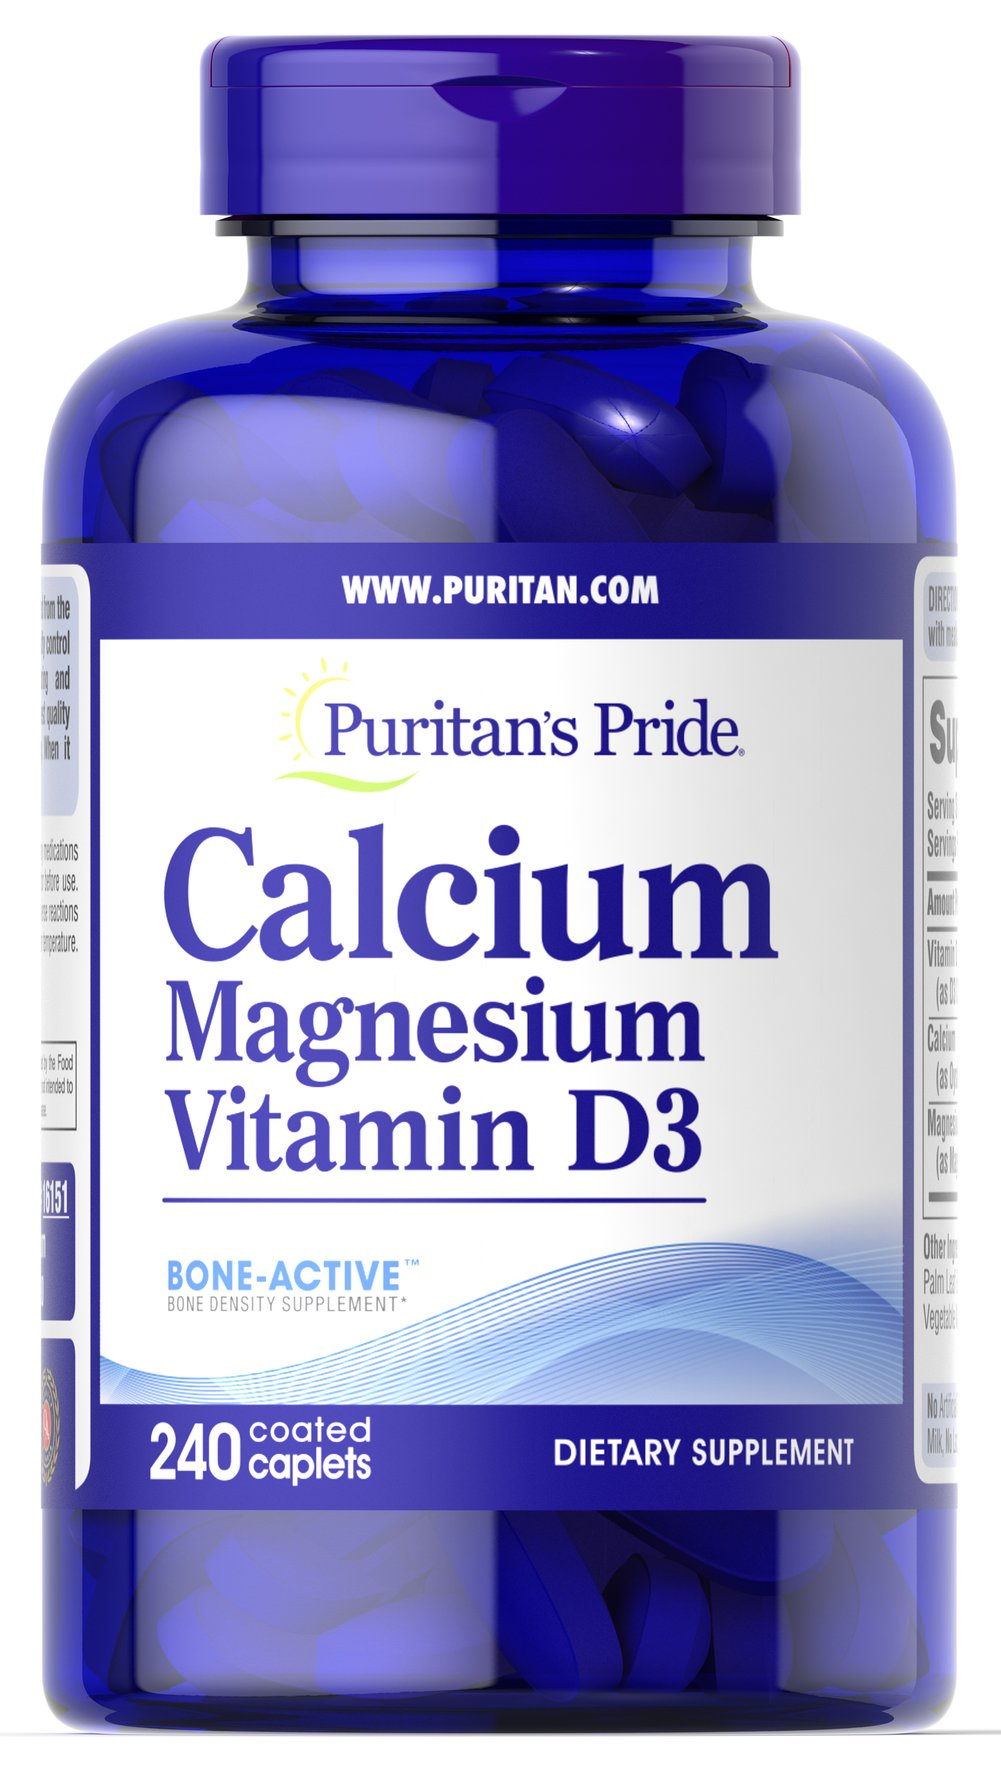 Calcium Magnesium with Vitamin D <p></p>This 3-in-1 supplement contains Bone-Active™ which is formulated to help maintain bone density and strength, supporting optimal bone health.** No matter what your age, you need to care for your bones. Supporting bone health with high-quality Calcium, Magnesium and Vitamin D is simple with this all-in-one supplement. Each of these nutrients plays an essential role in maintaining bone health.** Calcium and Magnesium are important for muscle contr